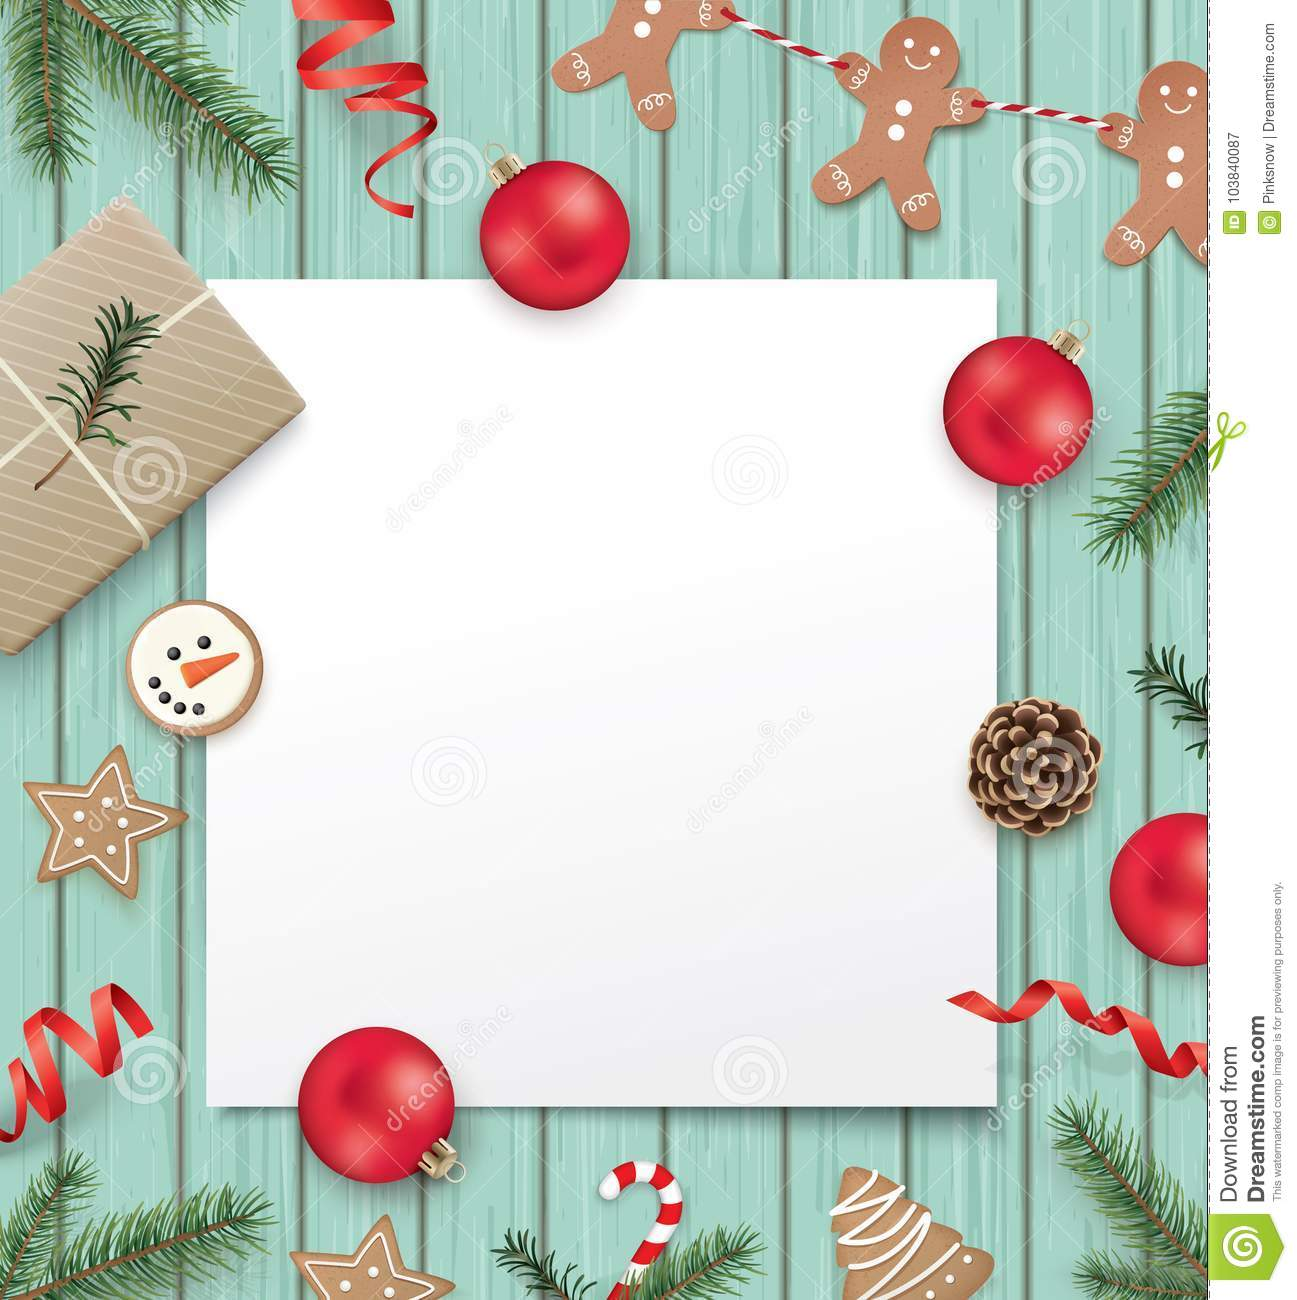 Christmas Design Template Stock Vector Illustration Of Merry